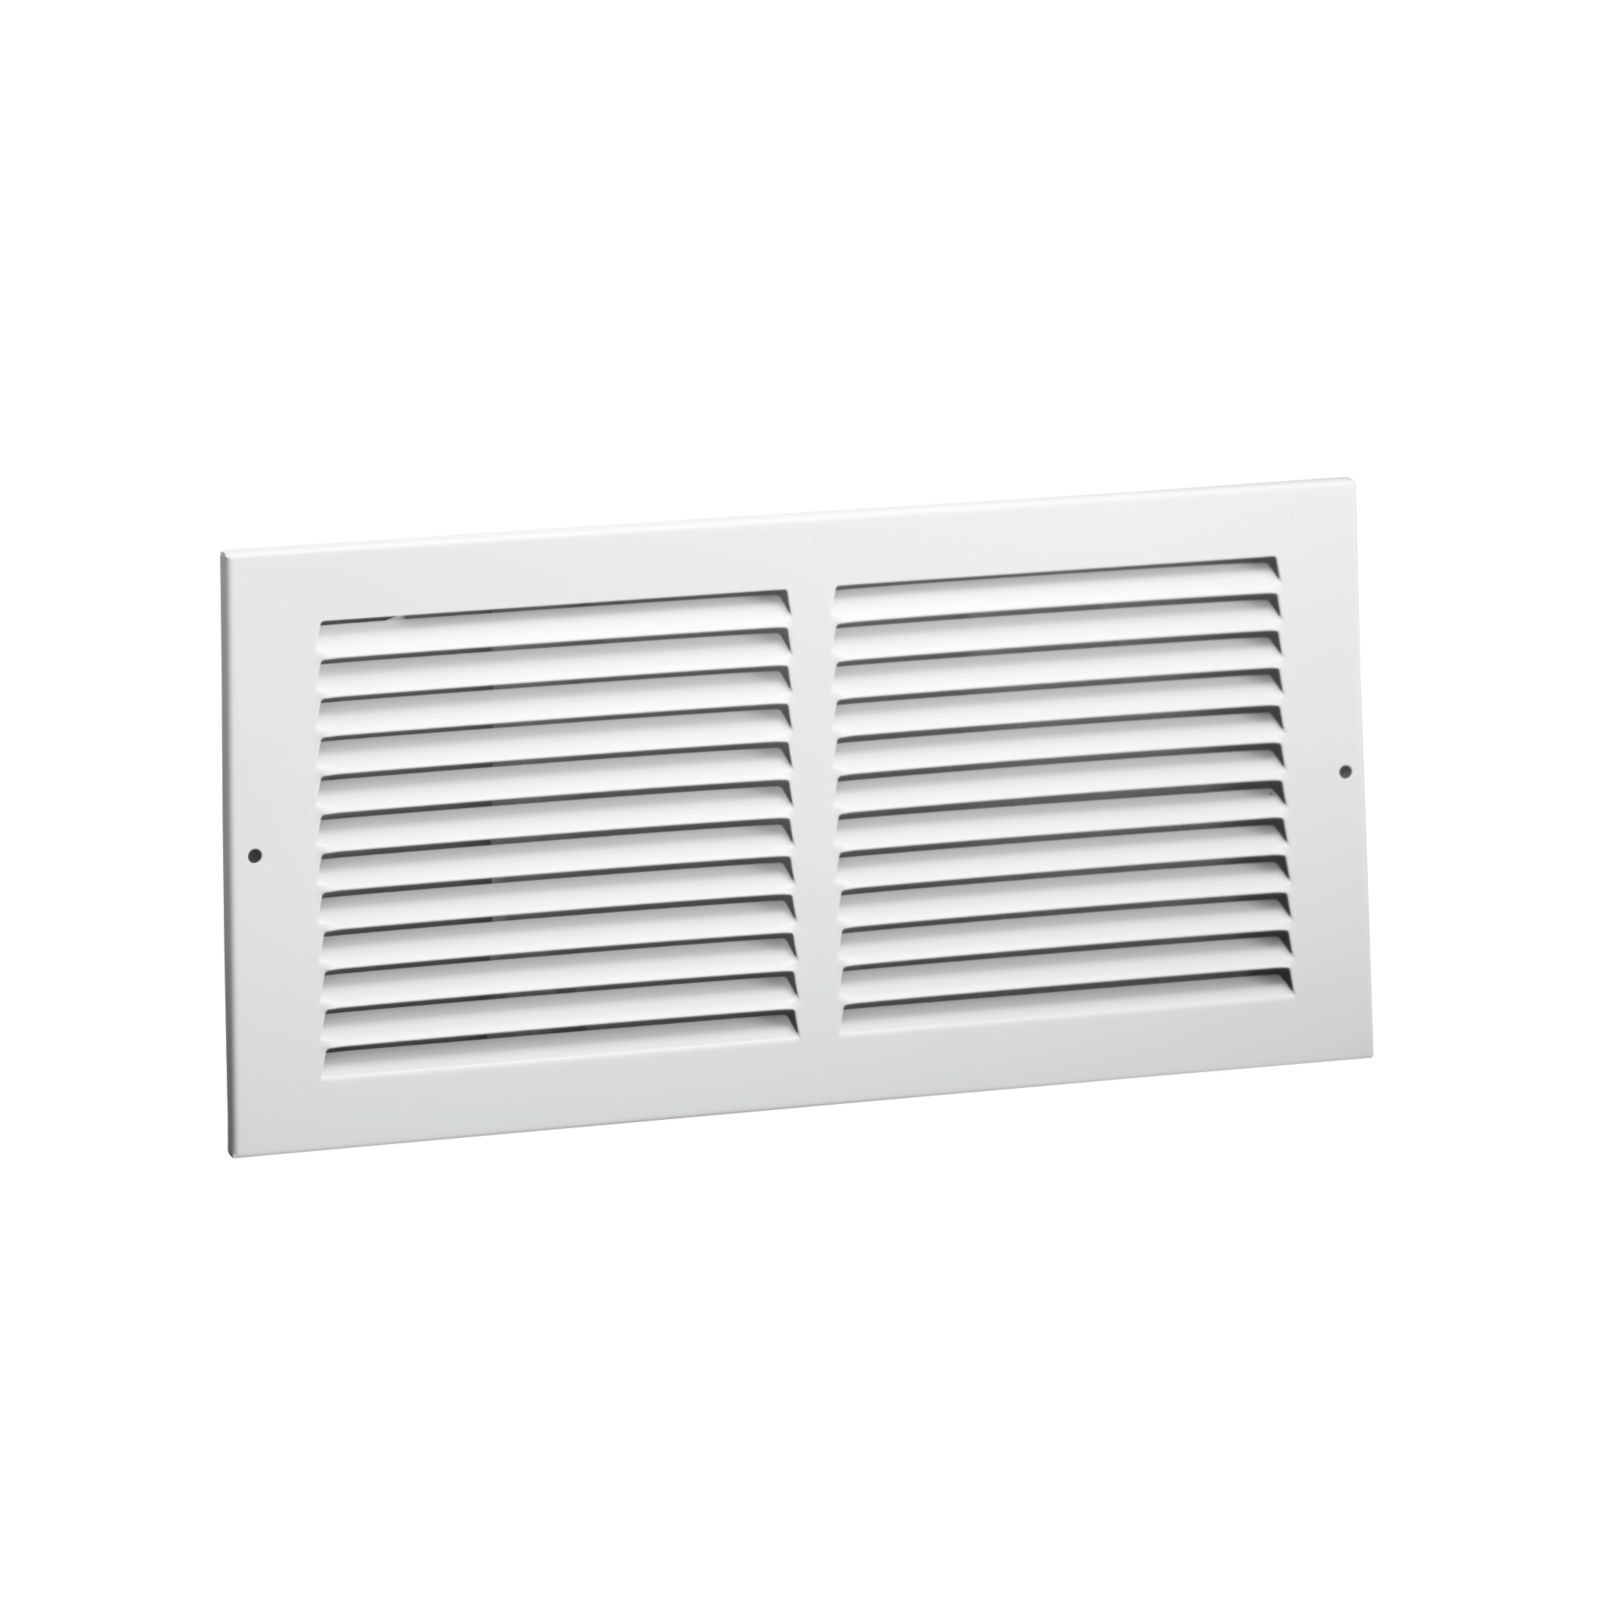 "Hart & Cooley 703983 - #672M Steel Return Air Grille, White Finish, 10"" X 6"""